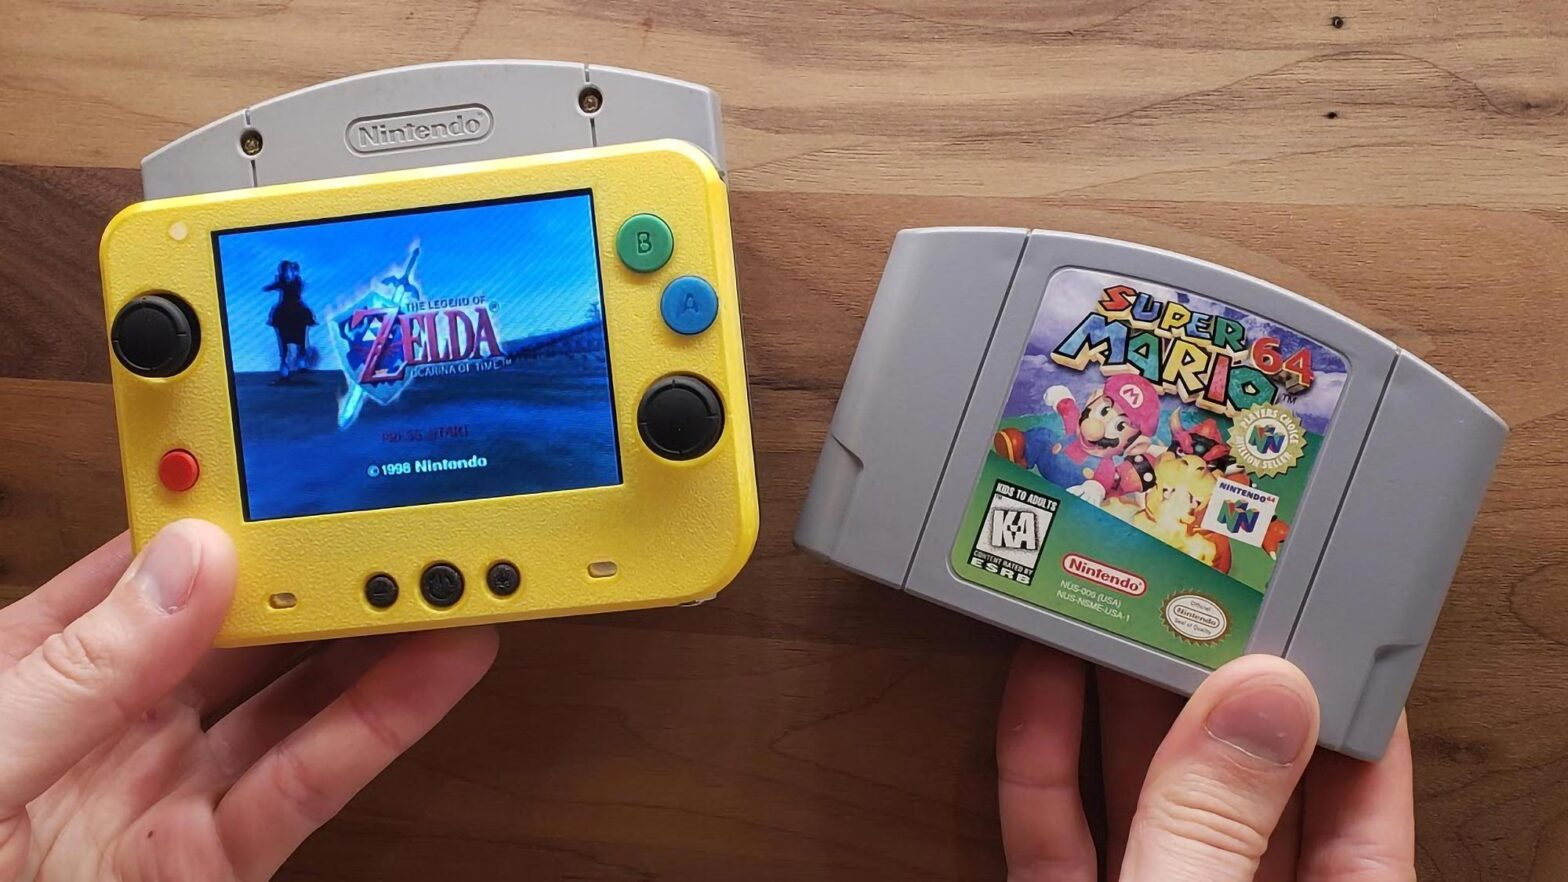 World's Smallest Nintendo 64 Portable by GmanModz